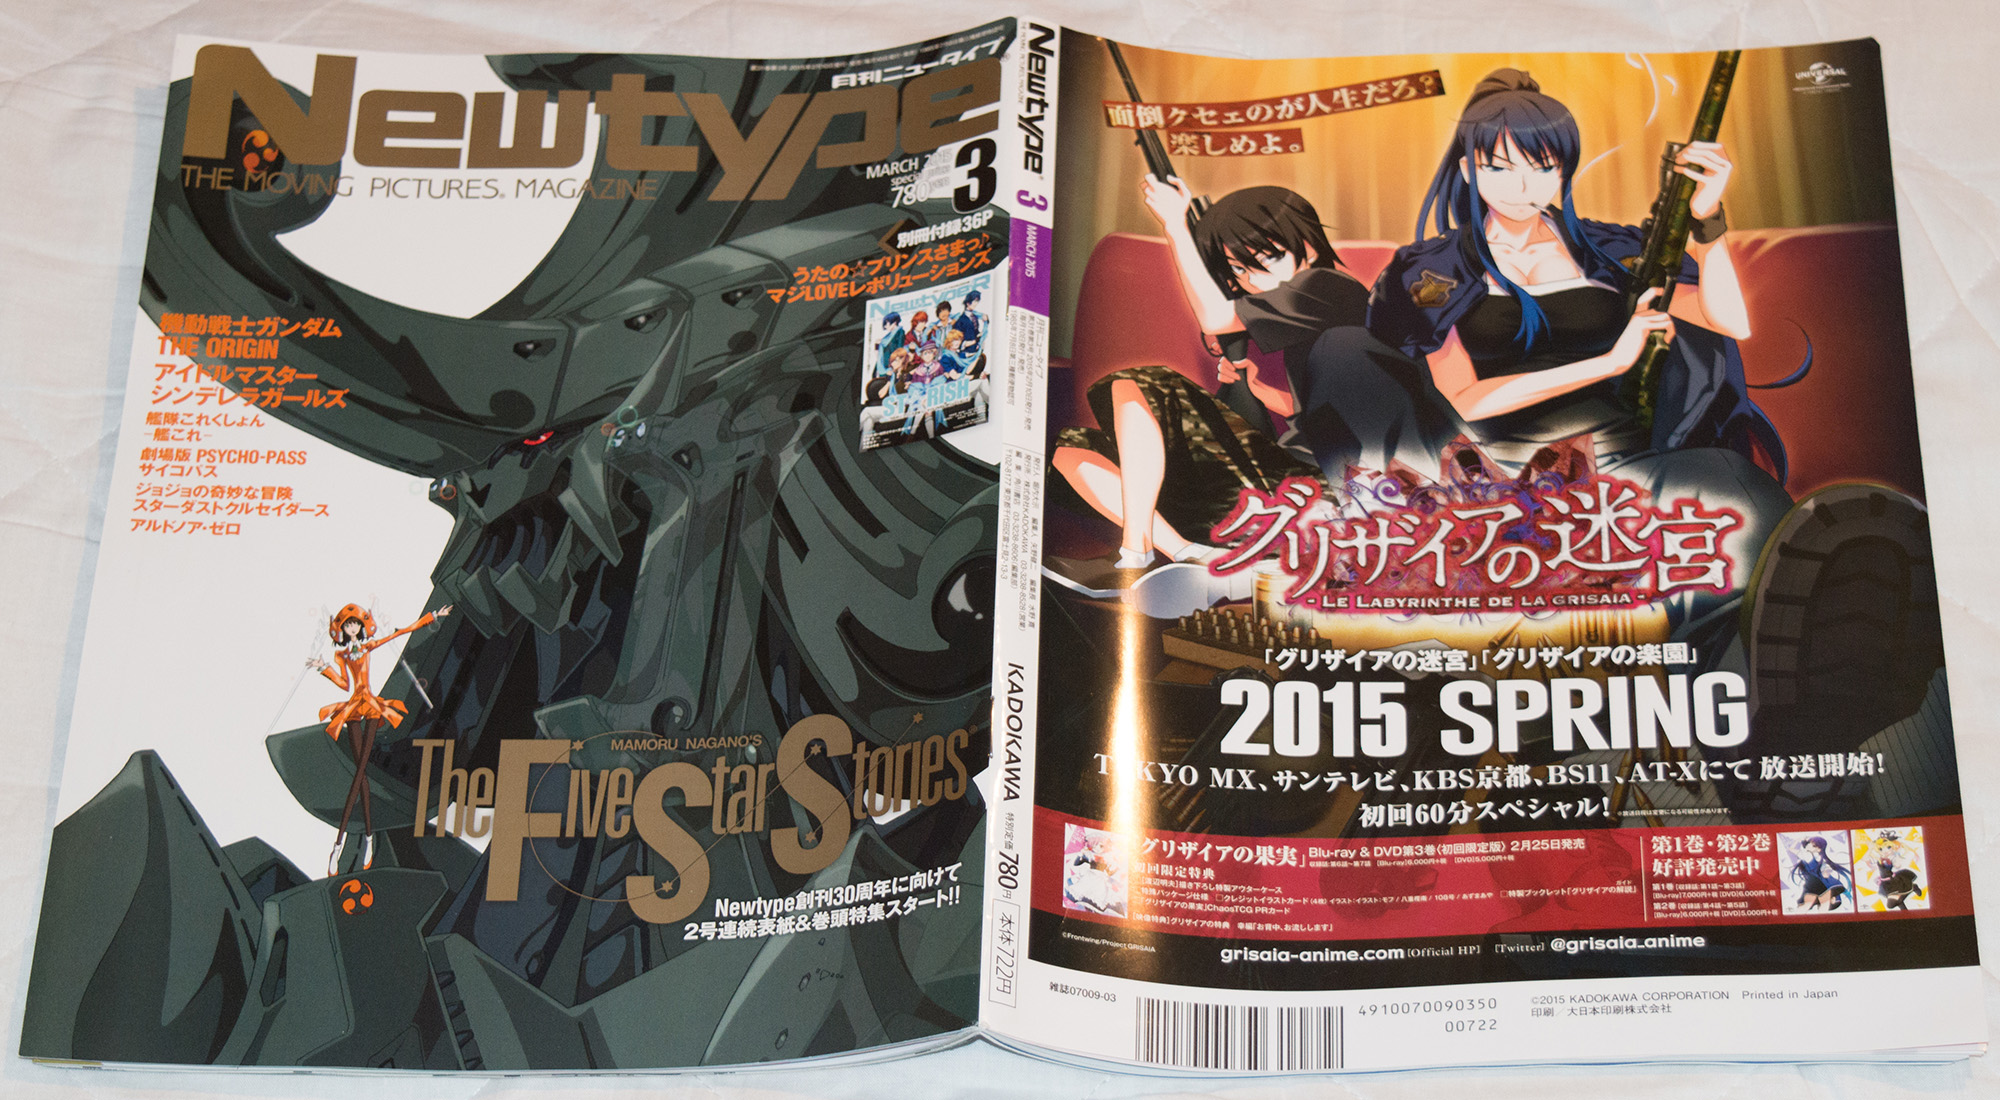 Newtype March 2015 posters Haruhichan.com cover and back